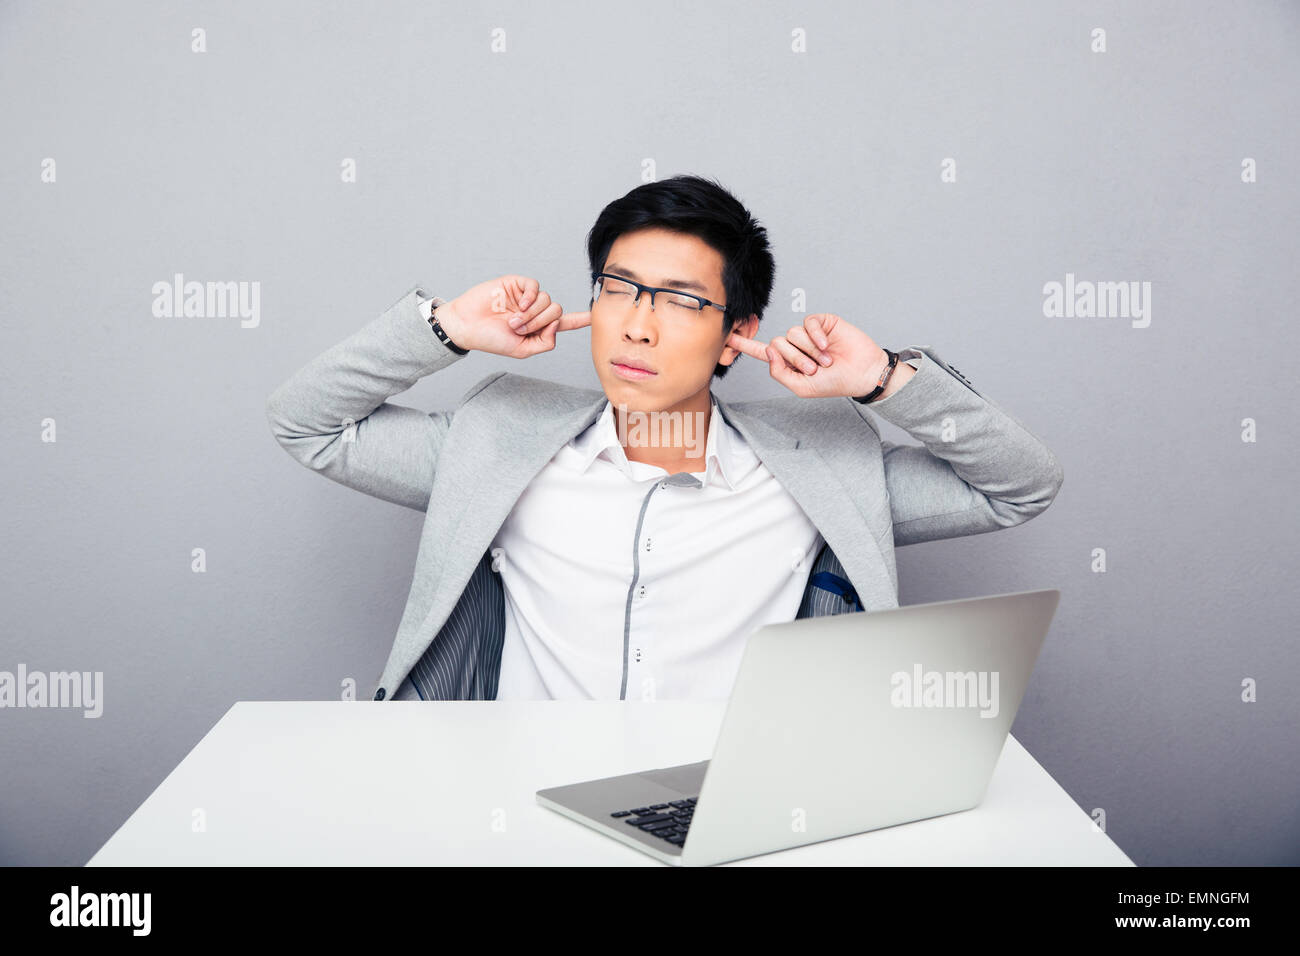 Handsome asian businessman sitting at the table and covering his ears over gray background - Stock Image